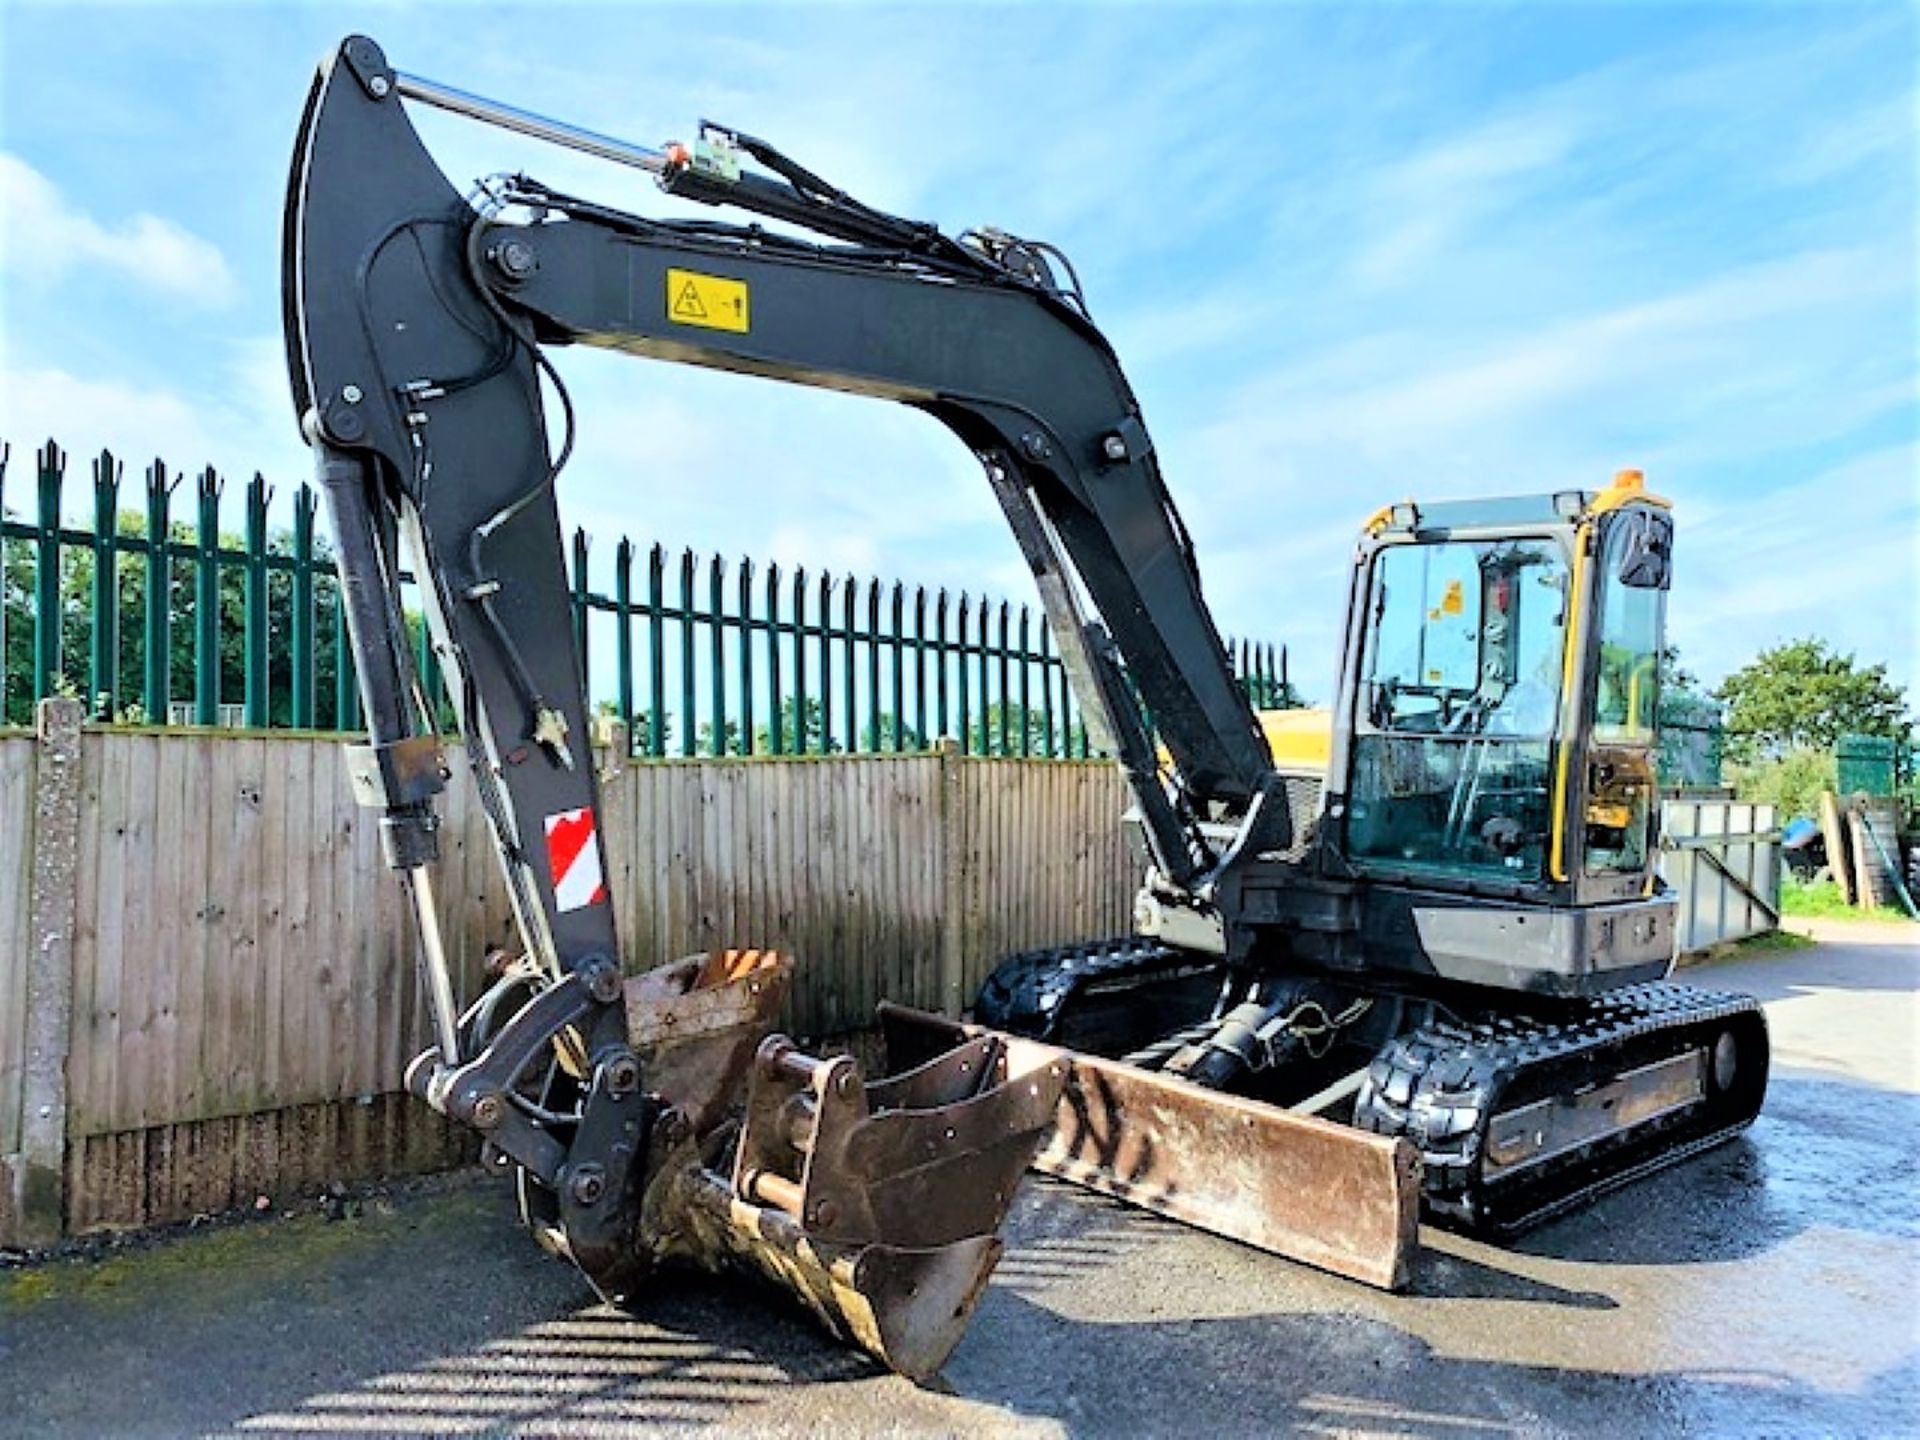 Lot 54 - VOLVO ECR88D RUBBER TRACKED DIGGER / EXCAVATOR, YEAR 2015, 4148 HOURS, 3 X BUCKETS, AIR CON, RADIO